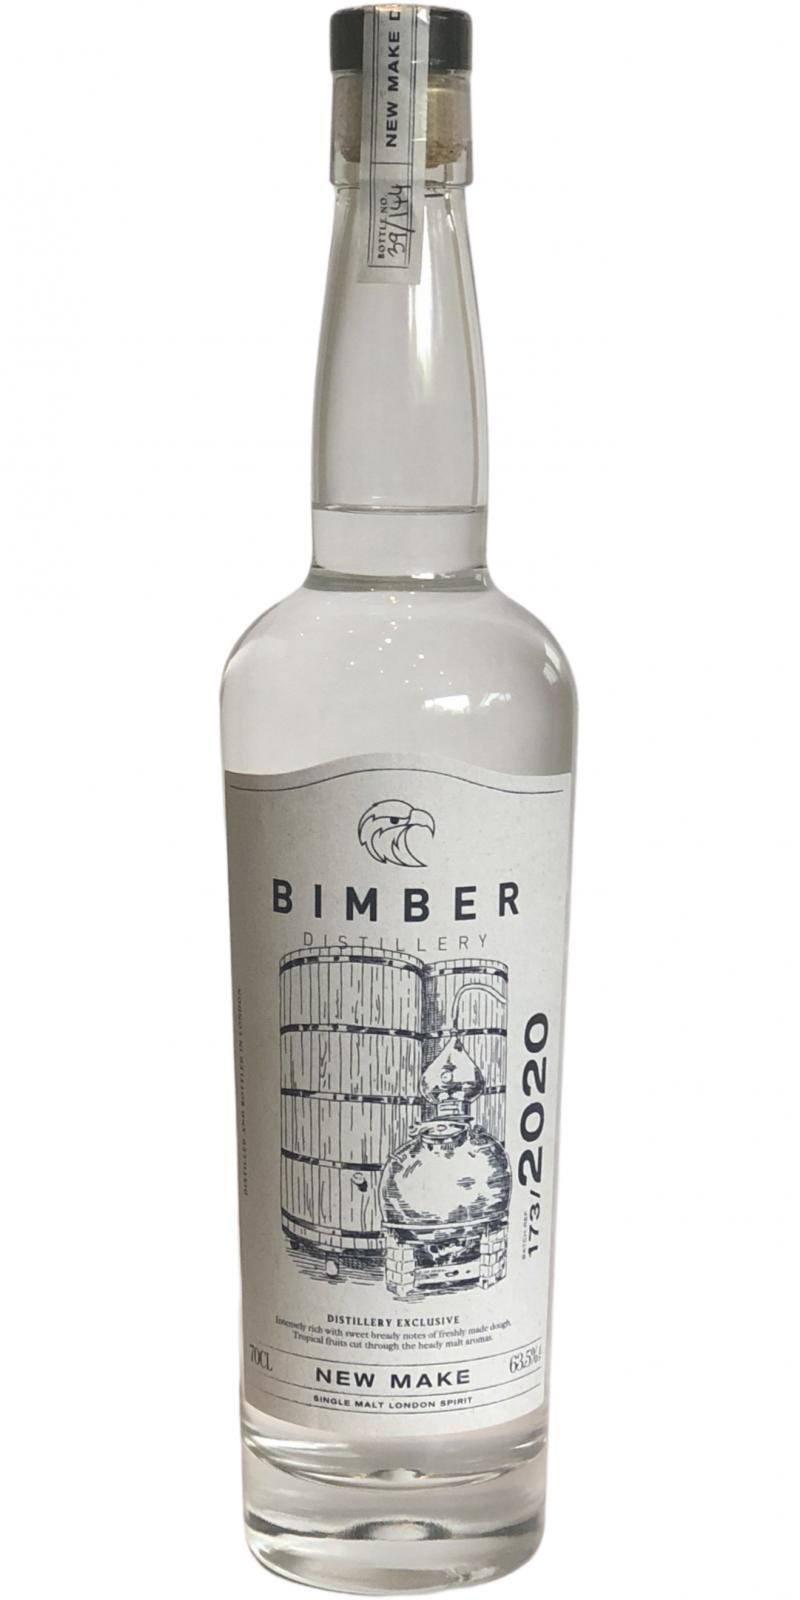 Bimber 2020 - New Make